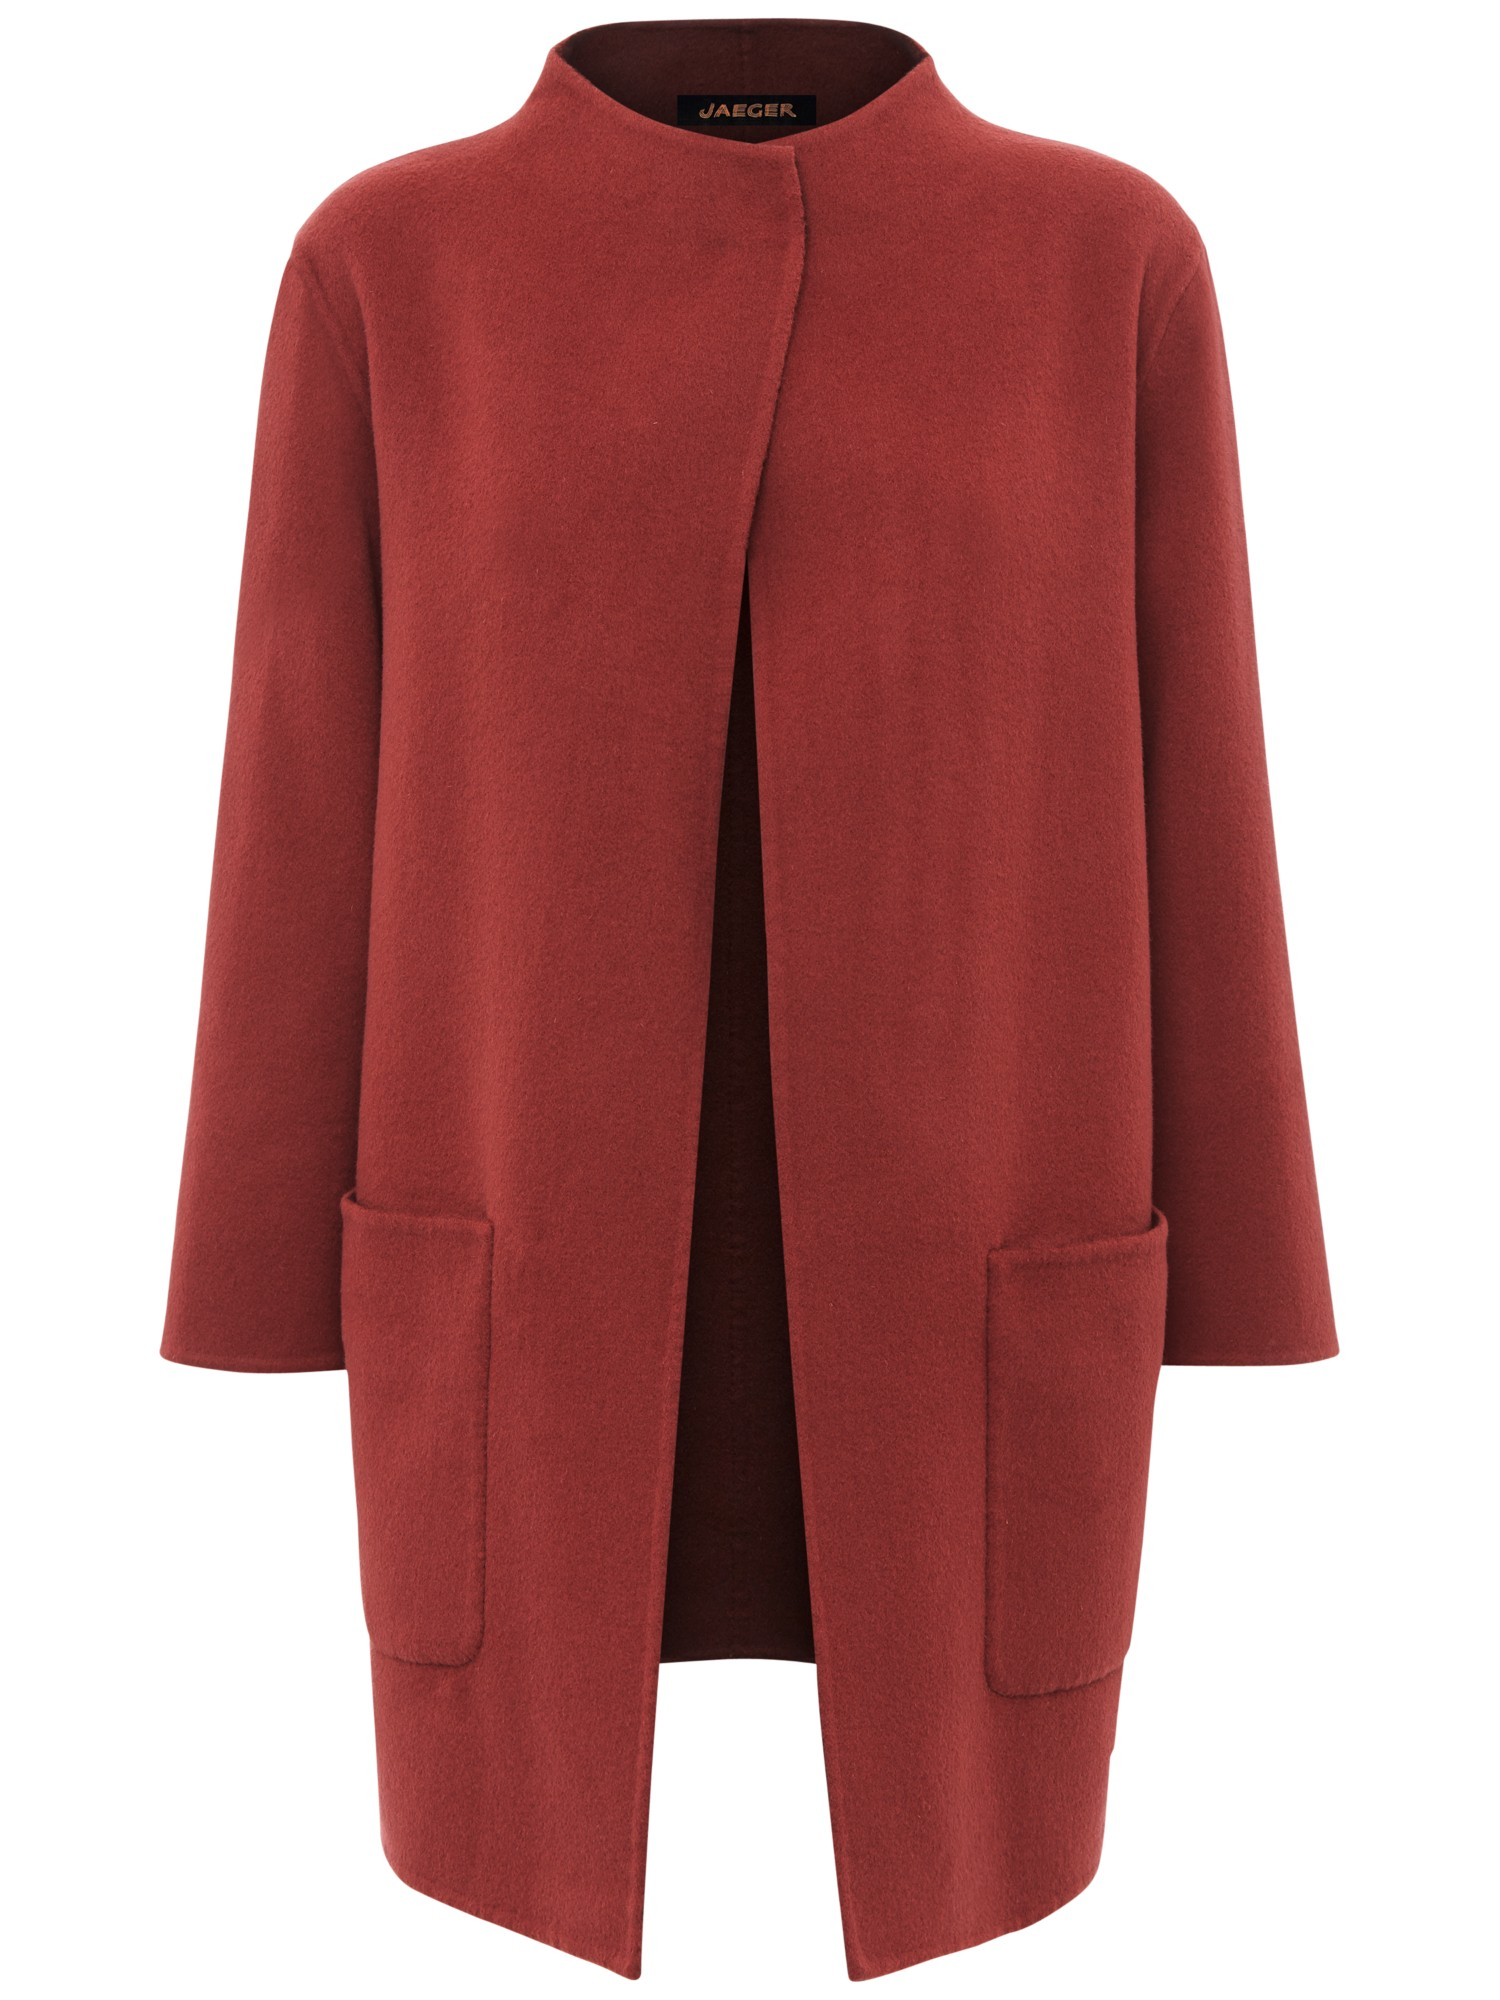 Jaeger Double-faced Wool Duster Coat in Pink   Lyst